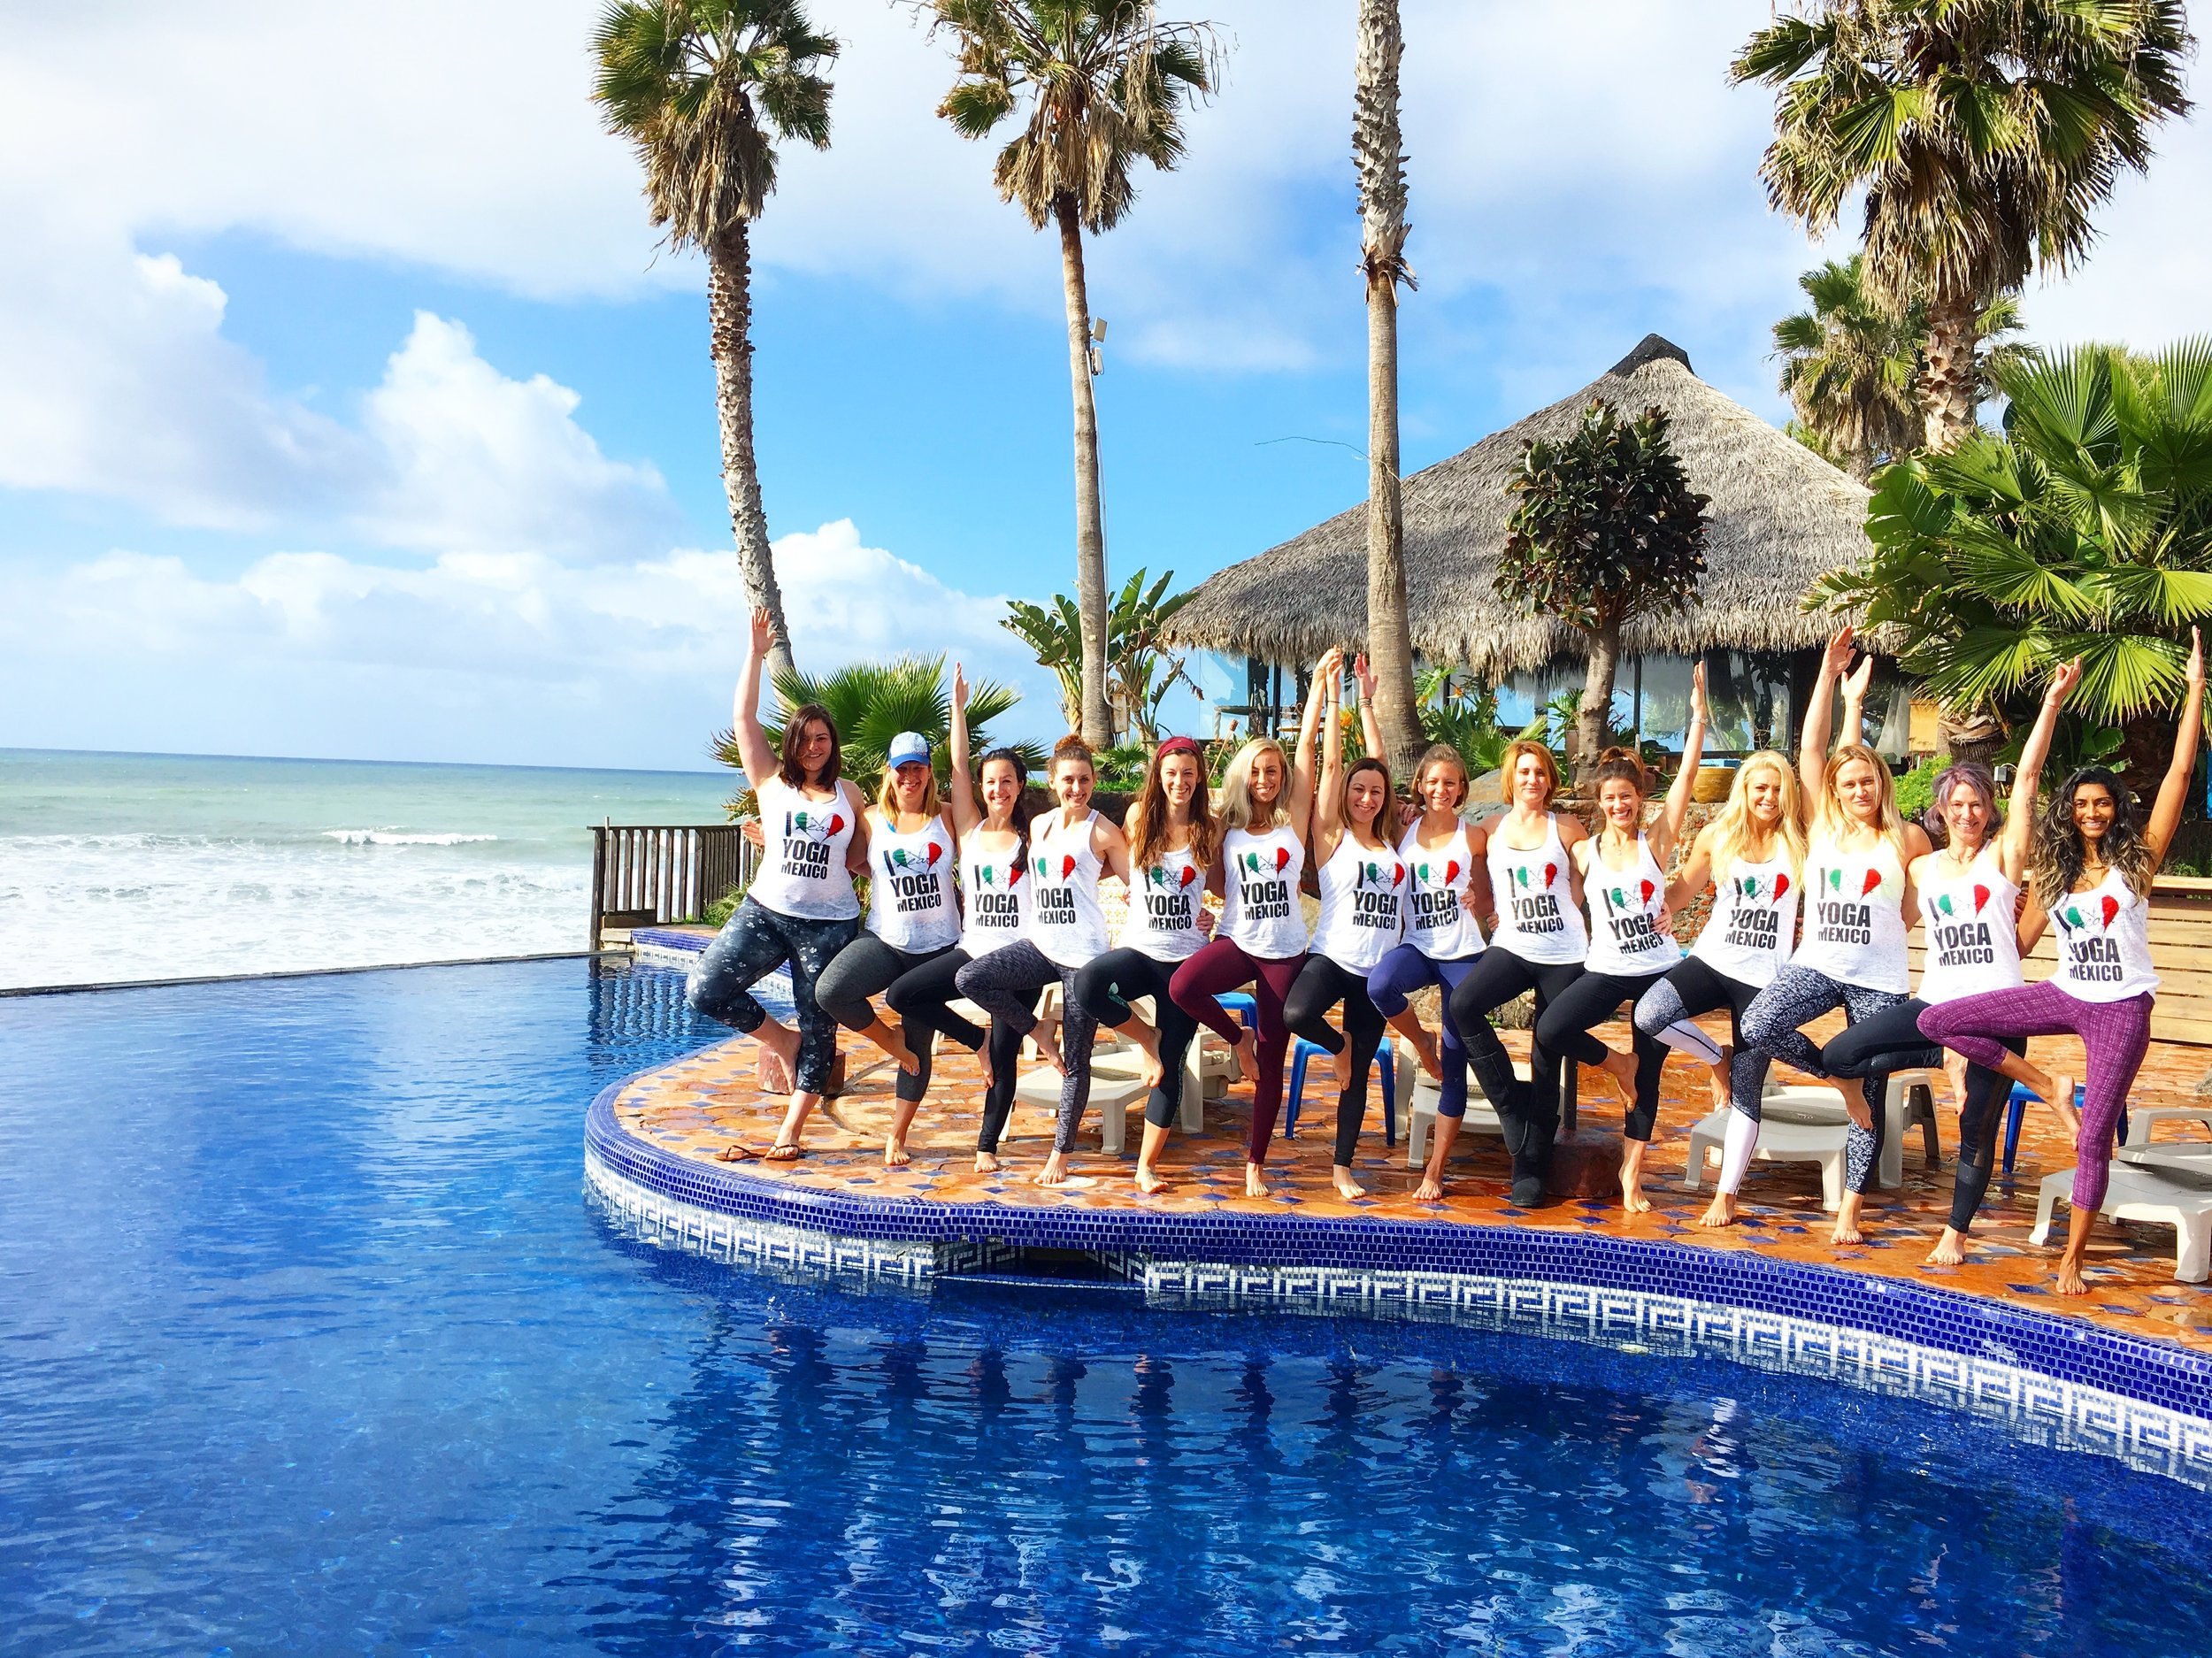 iHeartYoga in Mexico Group Pool.JPG